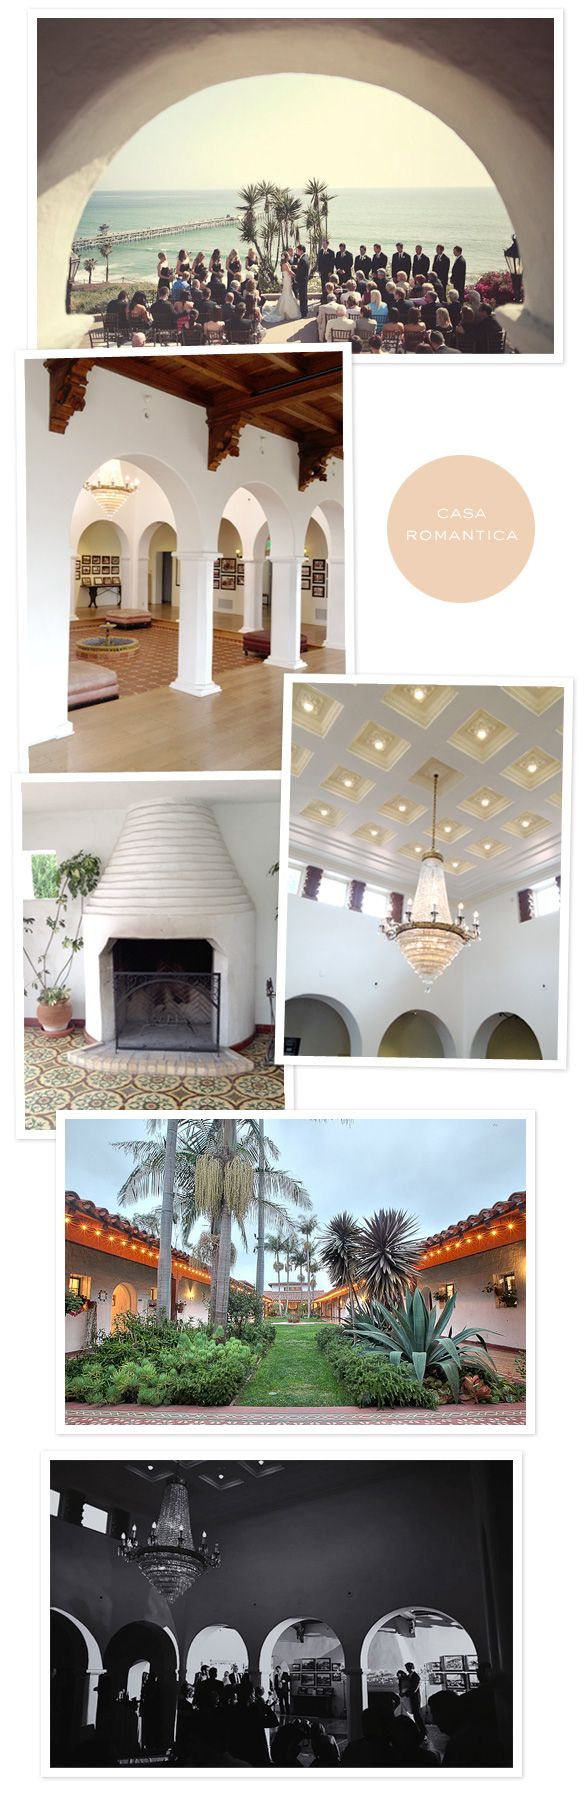 casa romantica Where I wanted to get married, but it was under construction..and I wouldve copied gaby! -repinned from SoCal celebrant https://OfficiantGuy.com #weddingsorangecounty